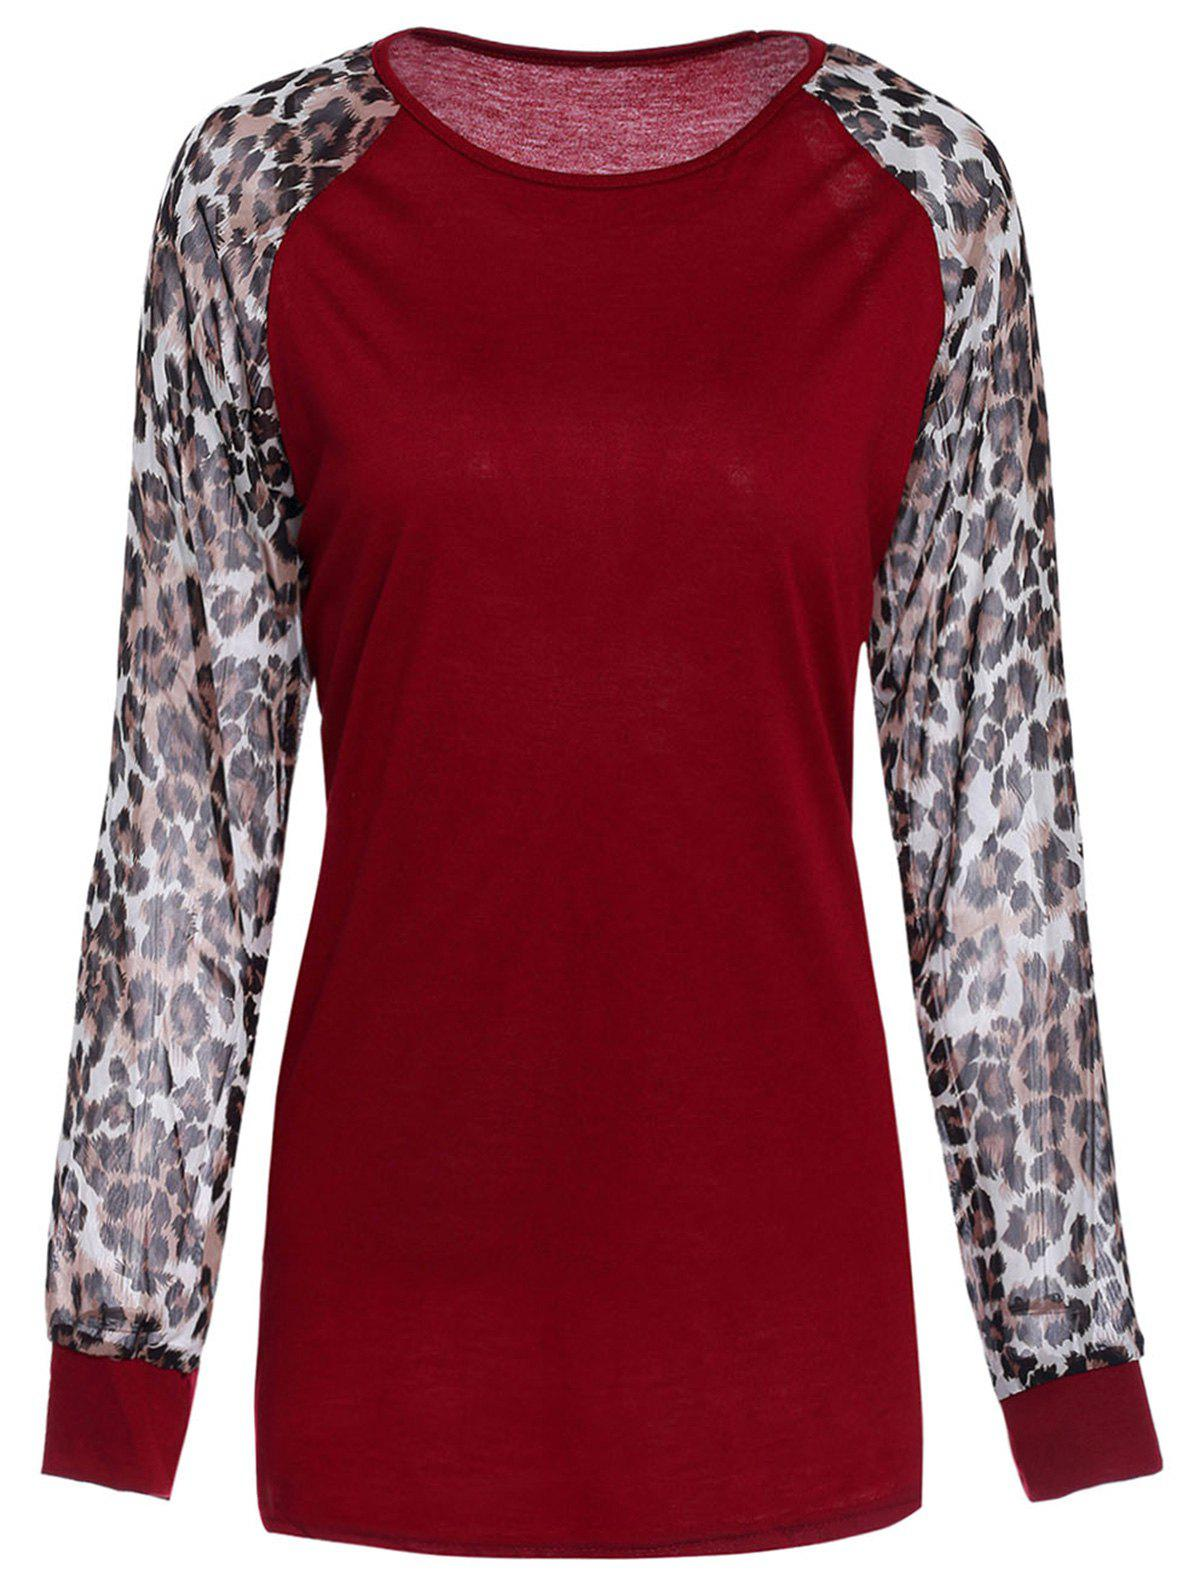 Chic Leopard Splicing Round Neck Long Sleeve T-Shirt For Women